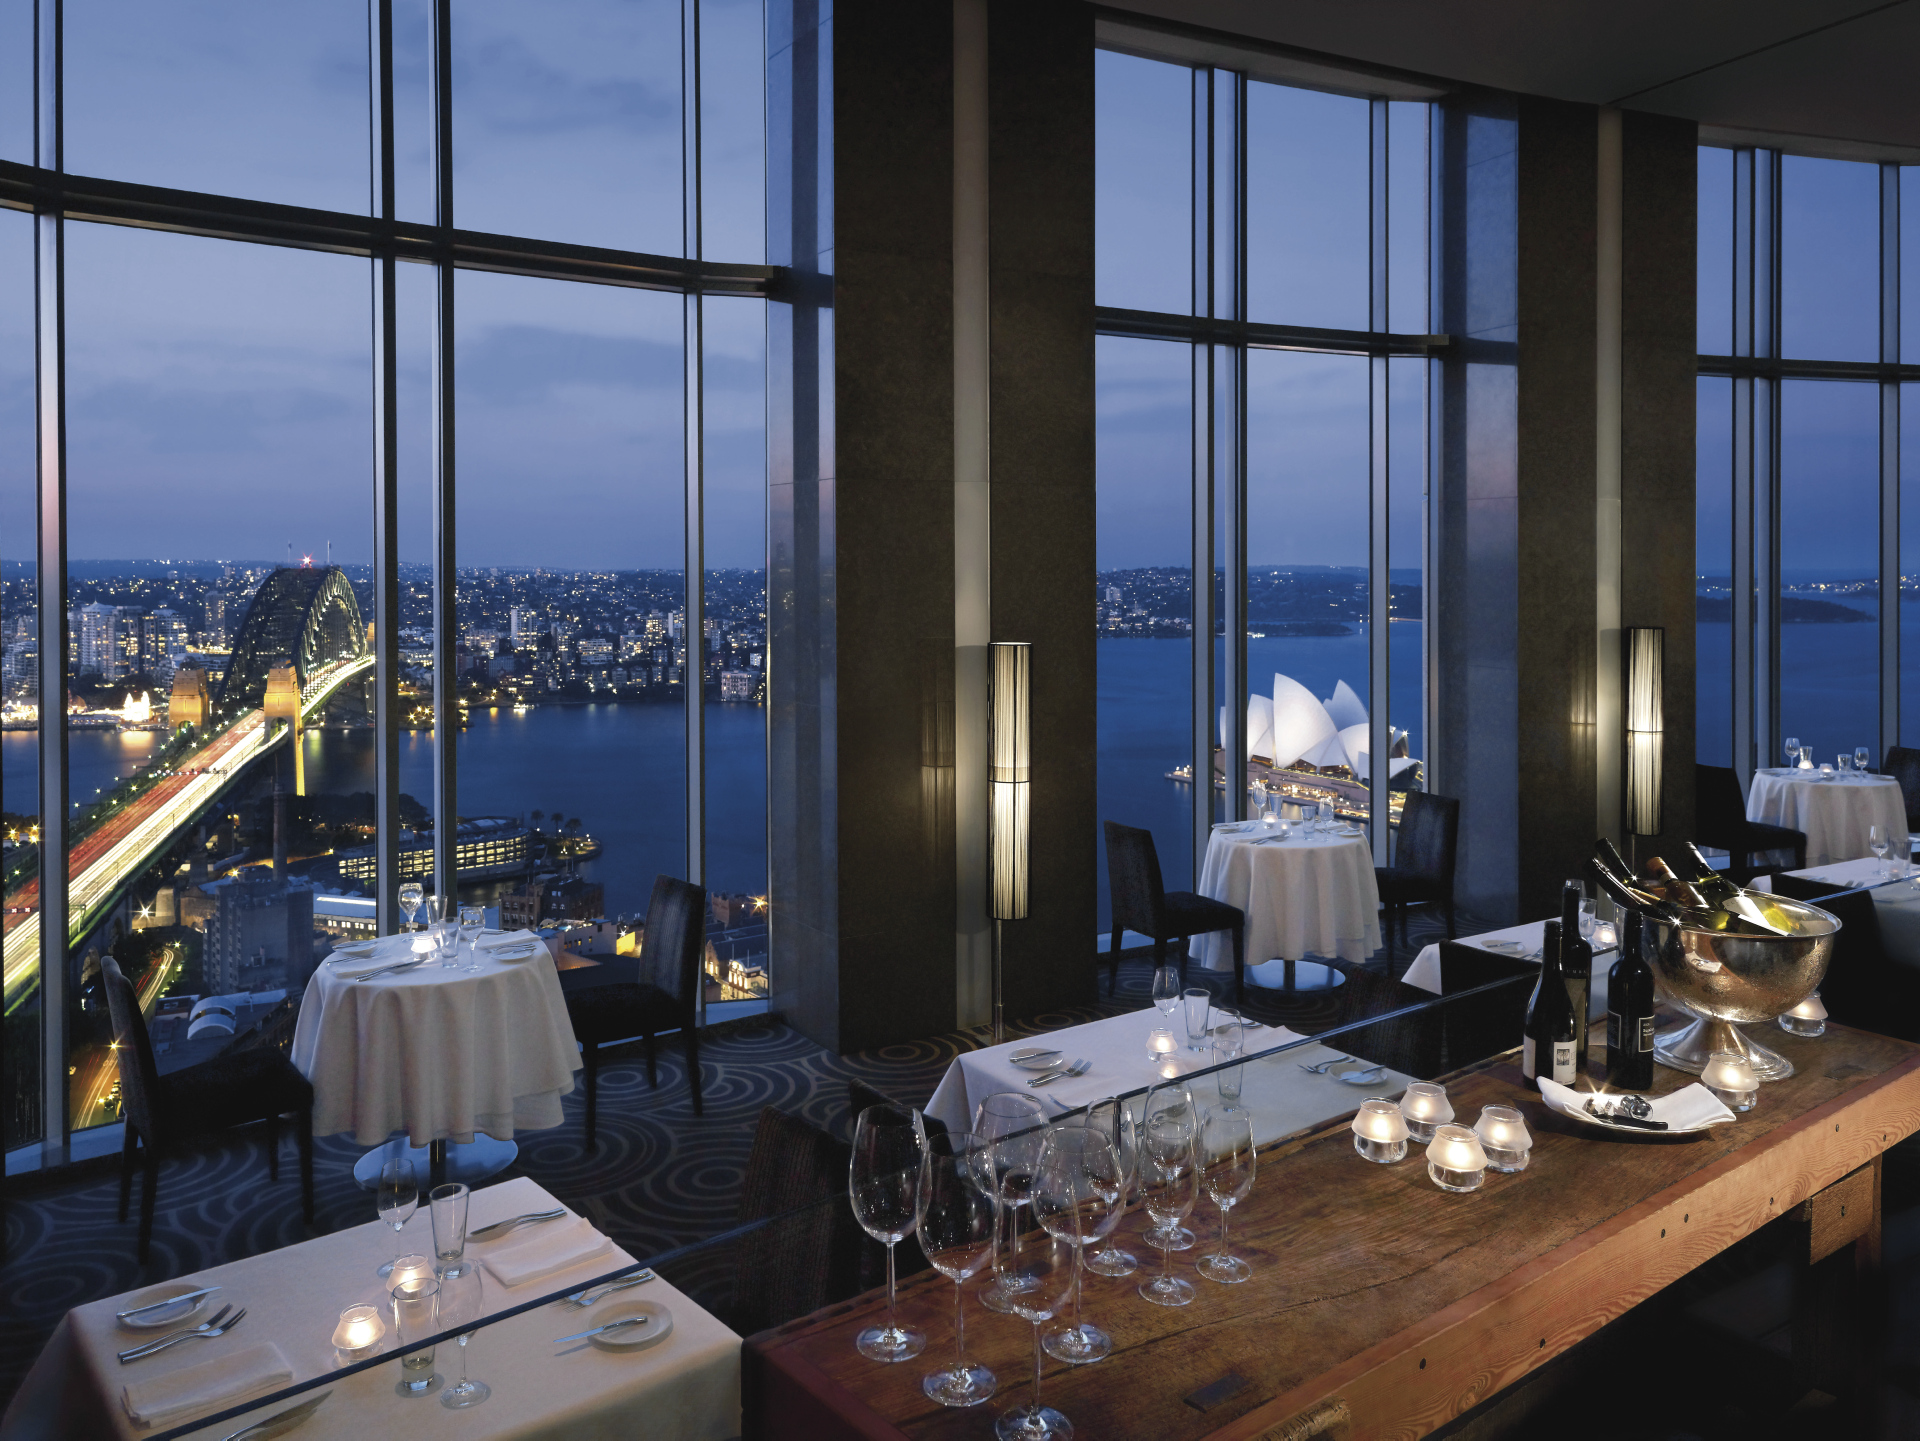 Altitude Restaurant im 36. Stock